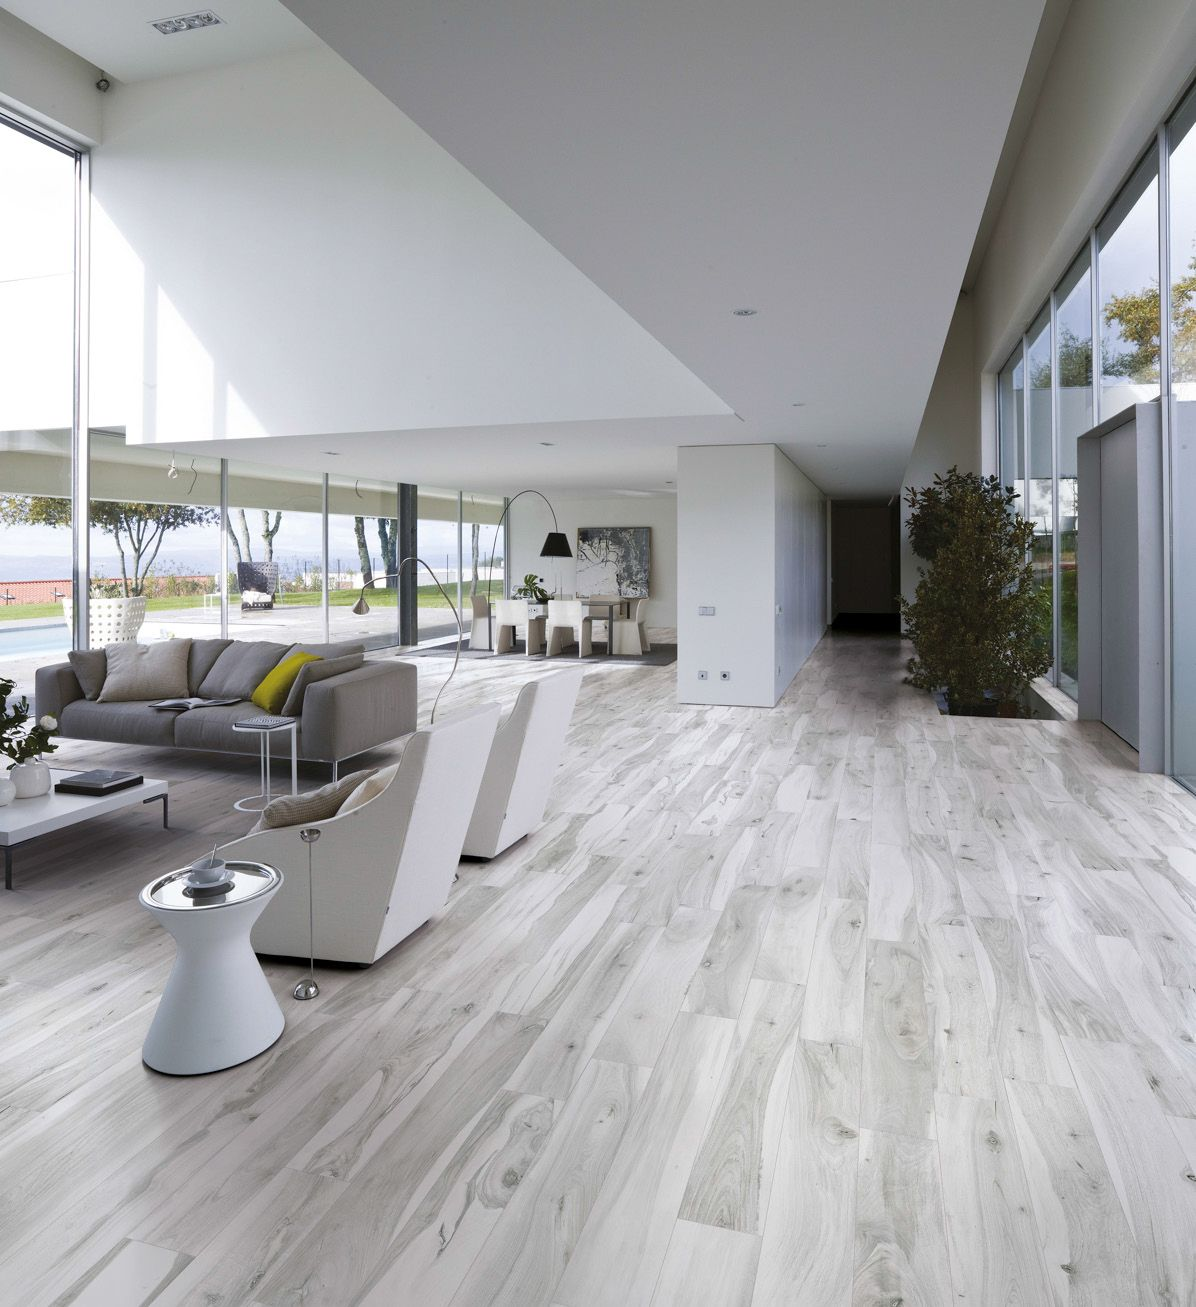 The wood look tile trend is going strong and weve discovered some amazing